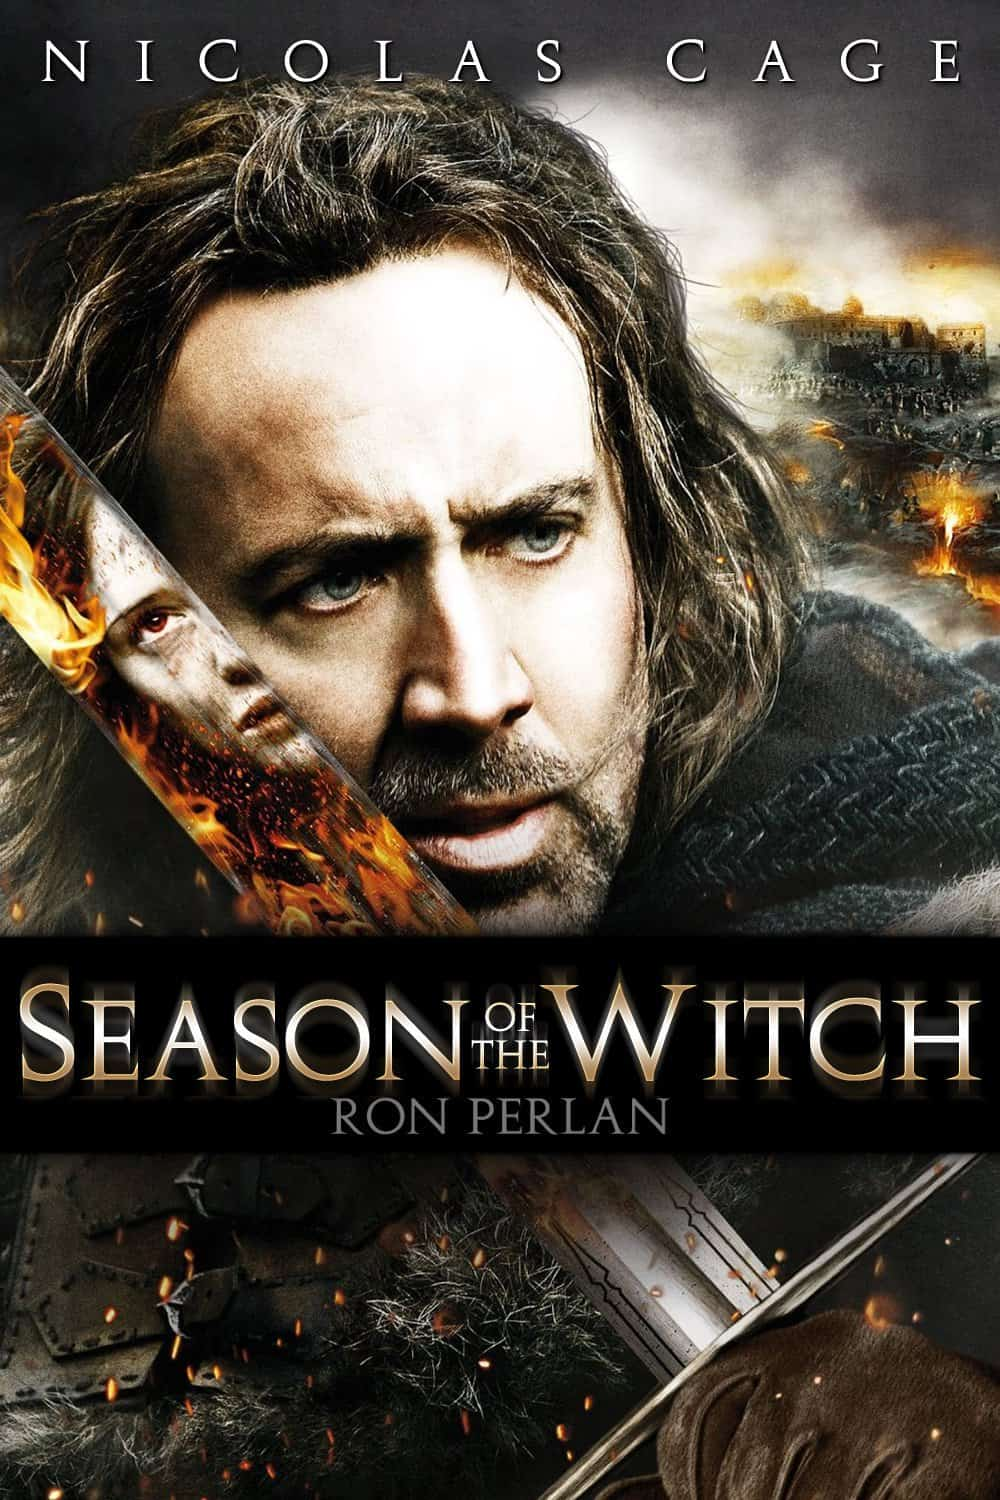 Season of the Witch, 2011